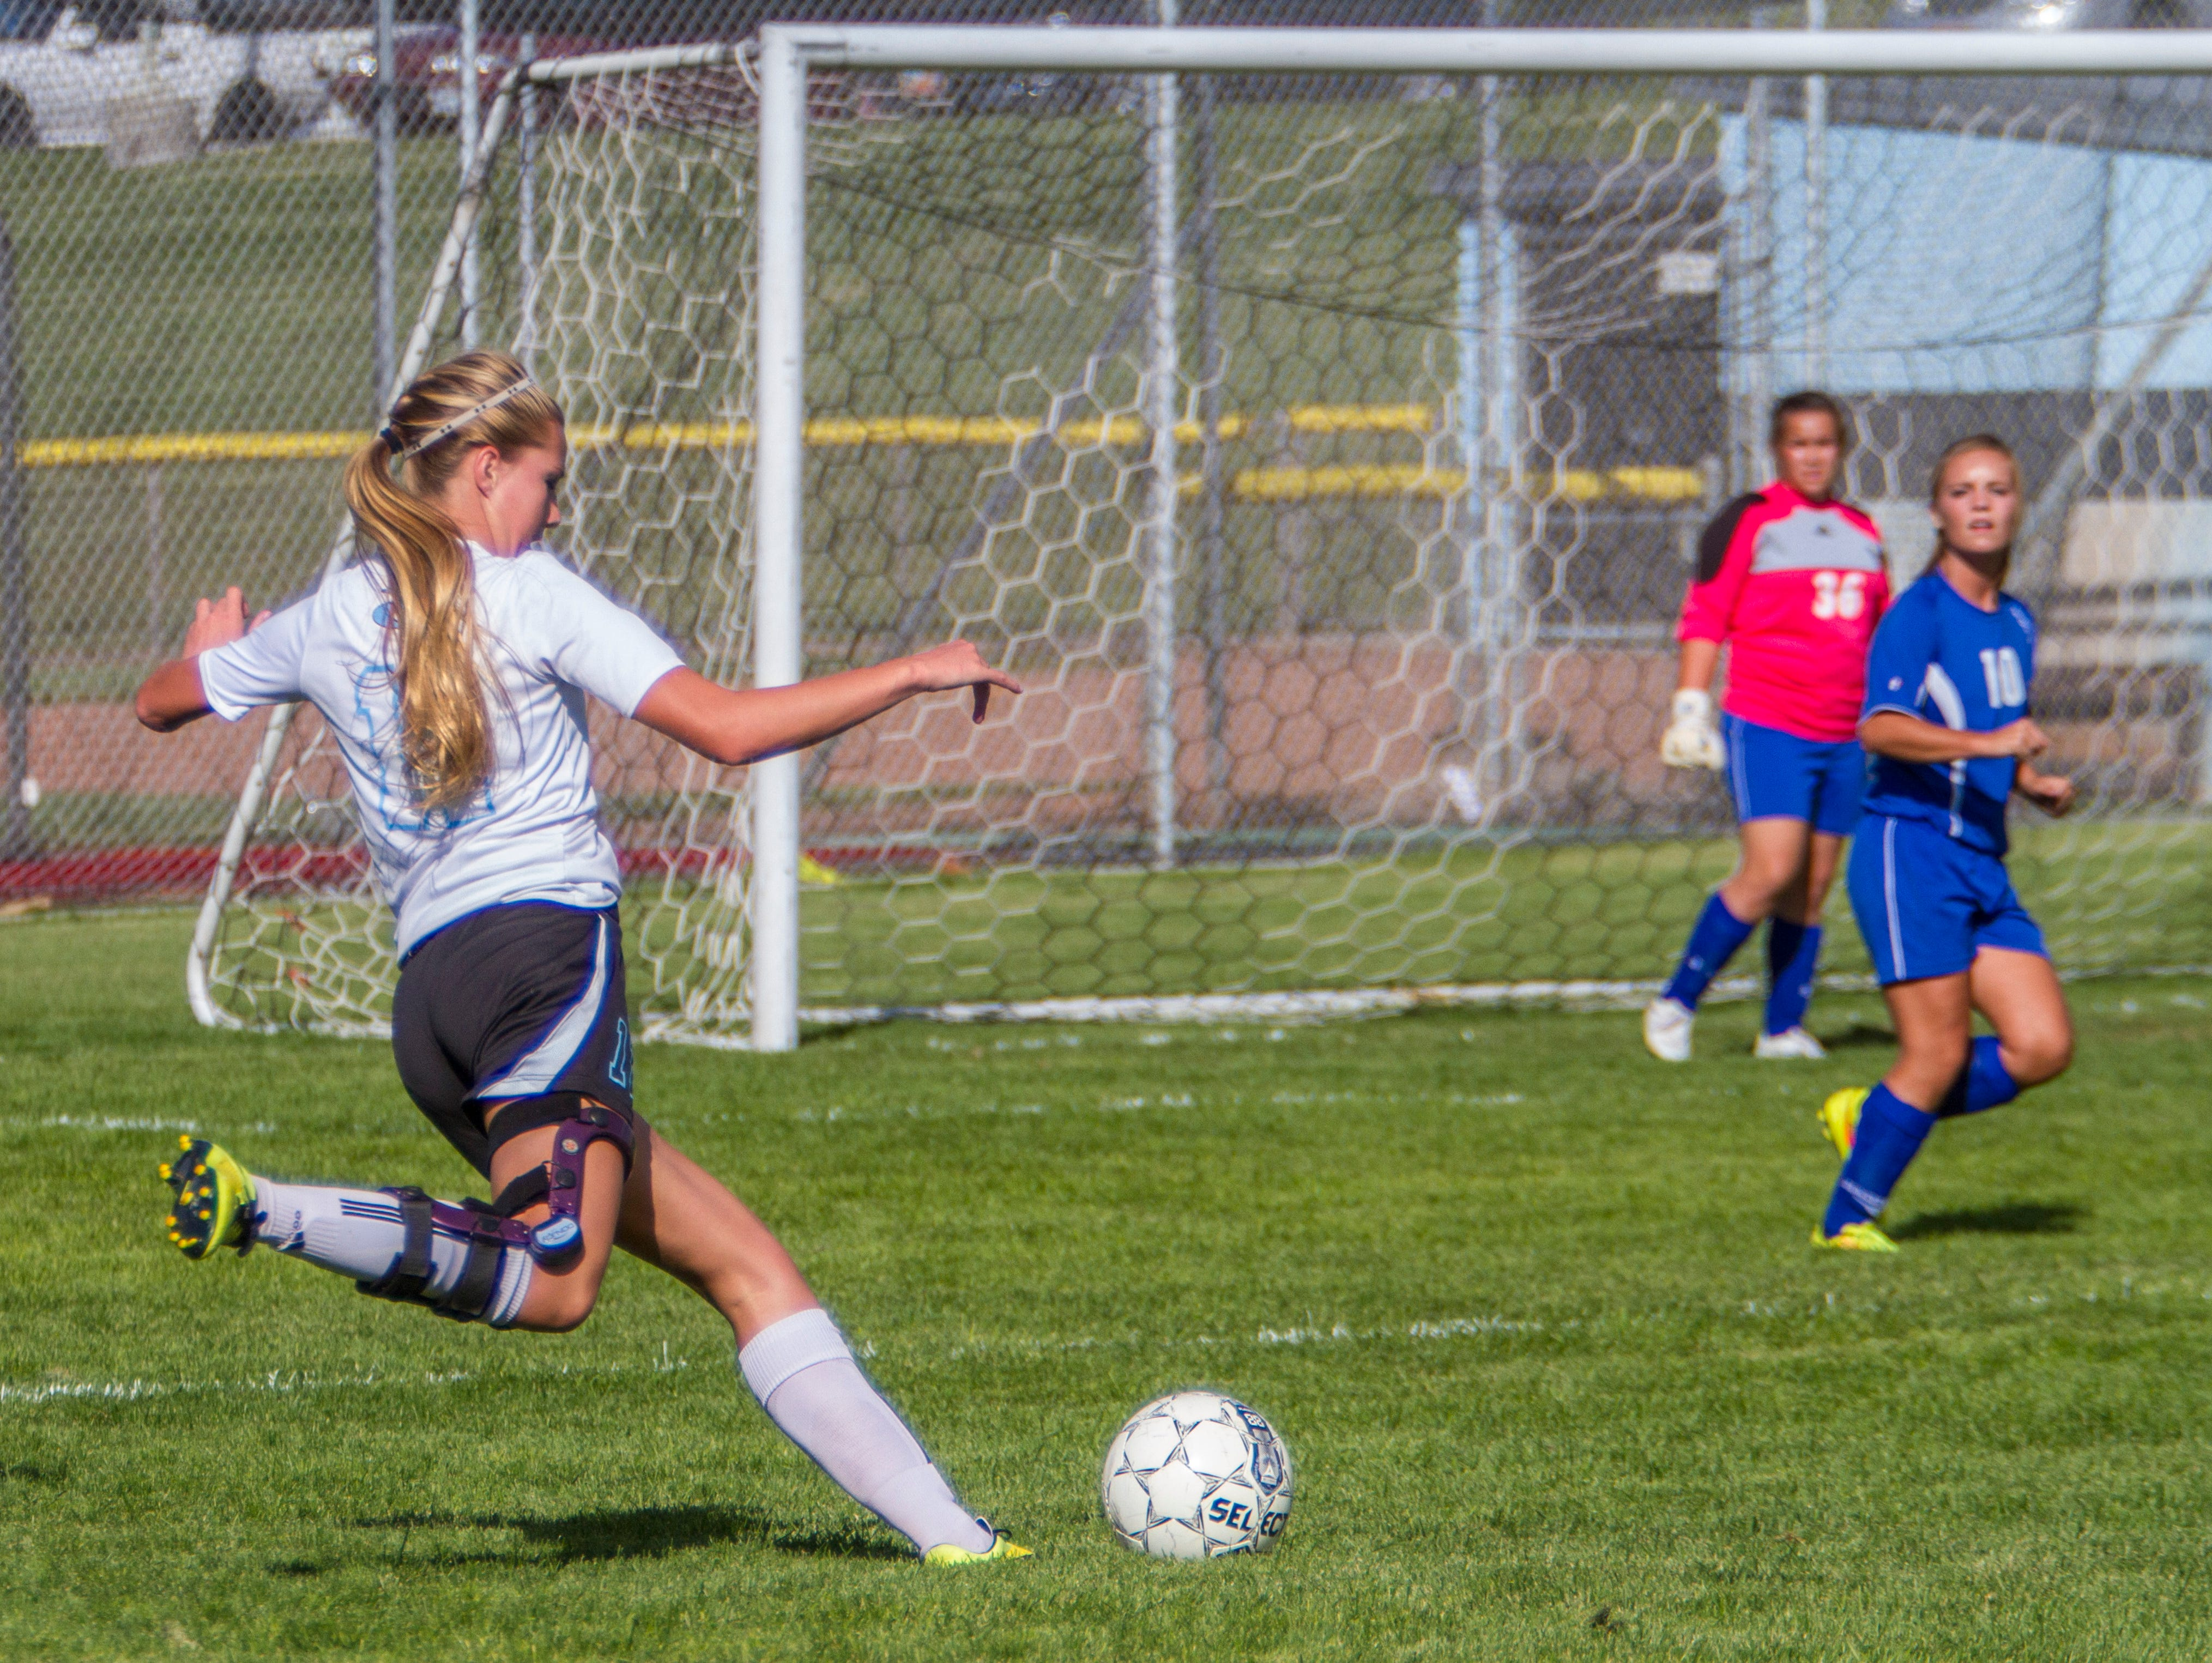 Canyon View's Kailey Cox takes a shot on goal in the game against Carbon, Thursday, Oct. 8, 2015.